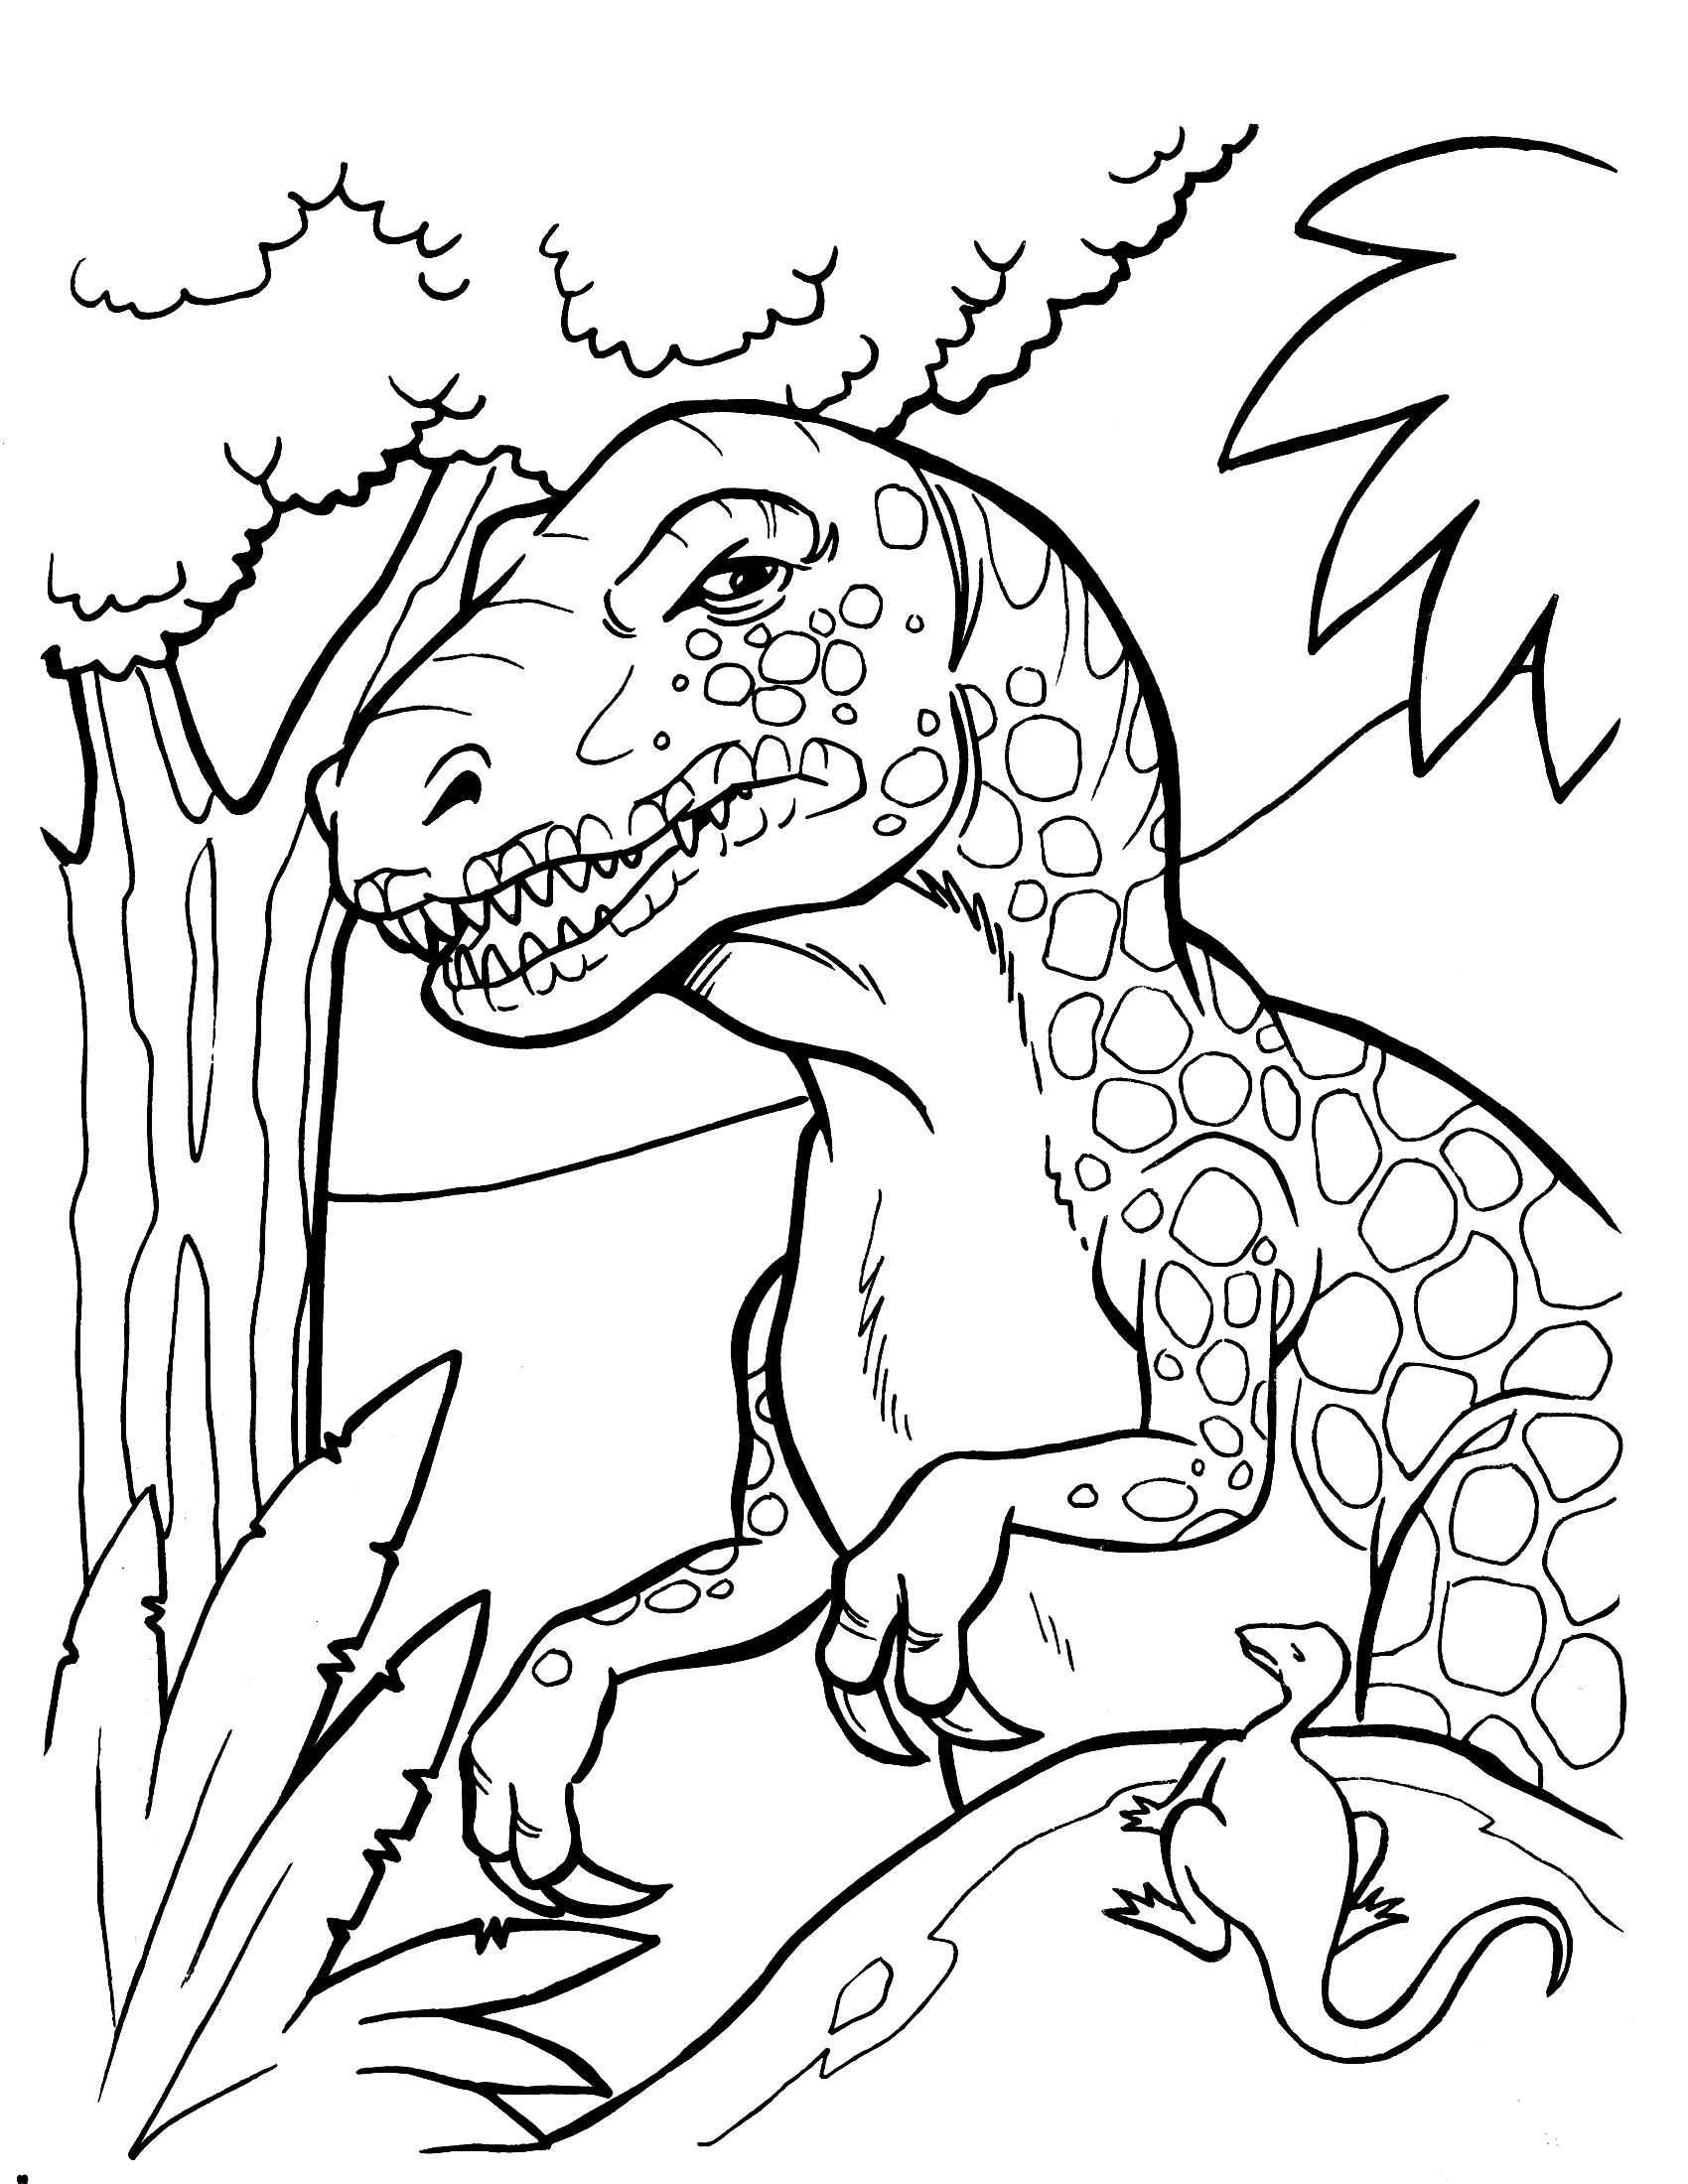 free dinosaur pictures to print and color dinosaur colouring pages in the playroom color pictures print and to free dinosaur